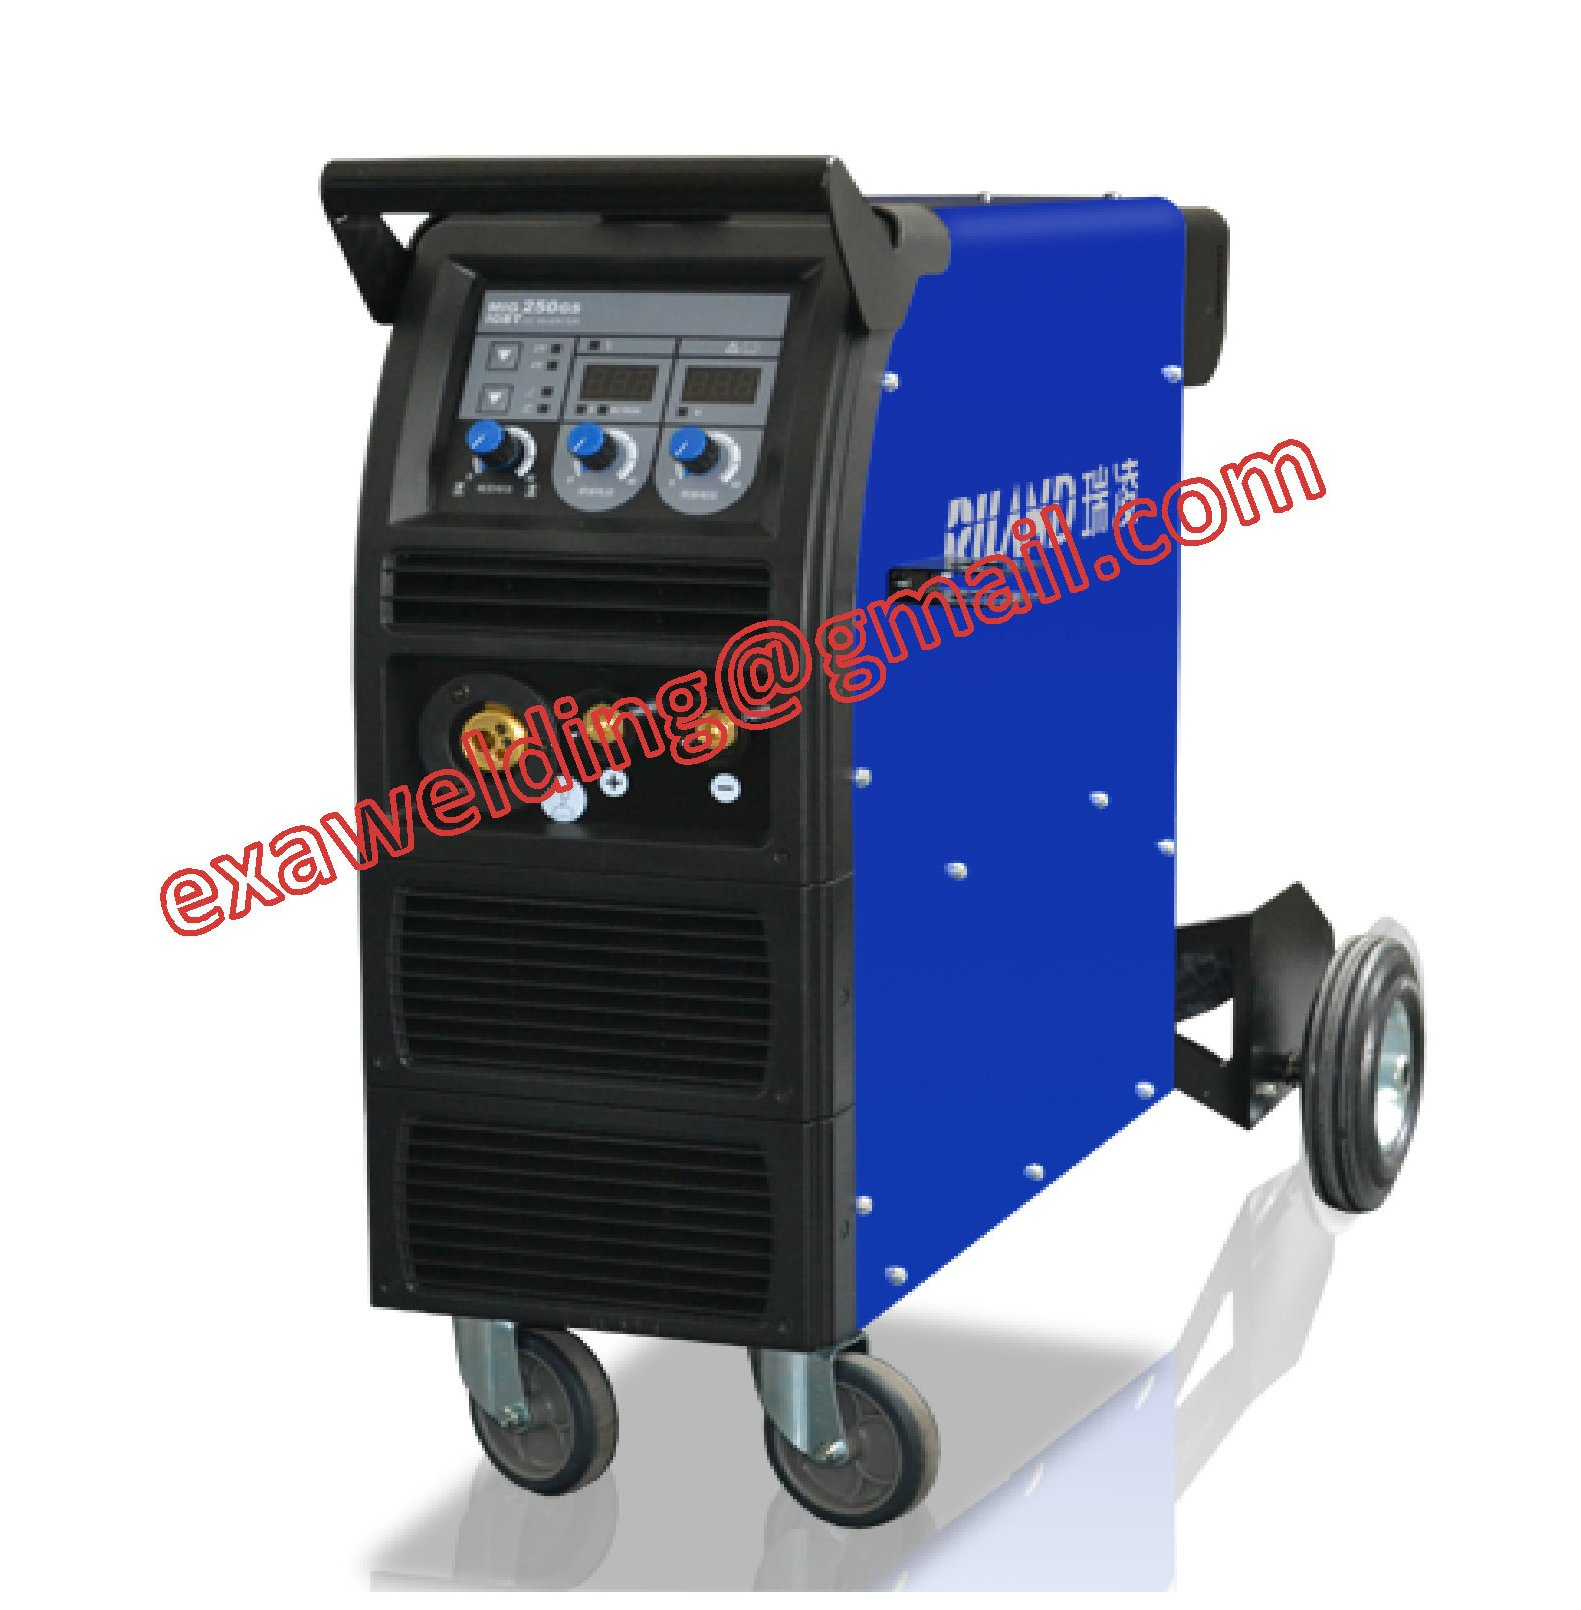 RILAND MIG250GS INVERTER MACHINE